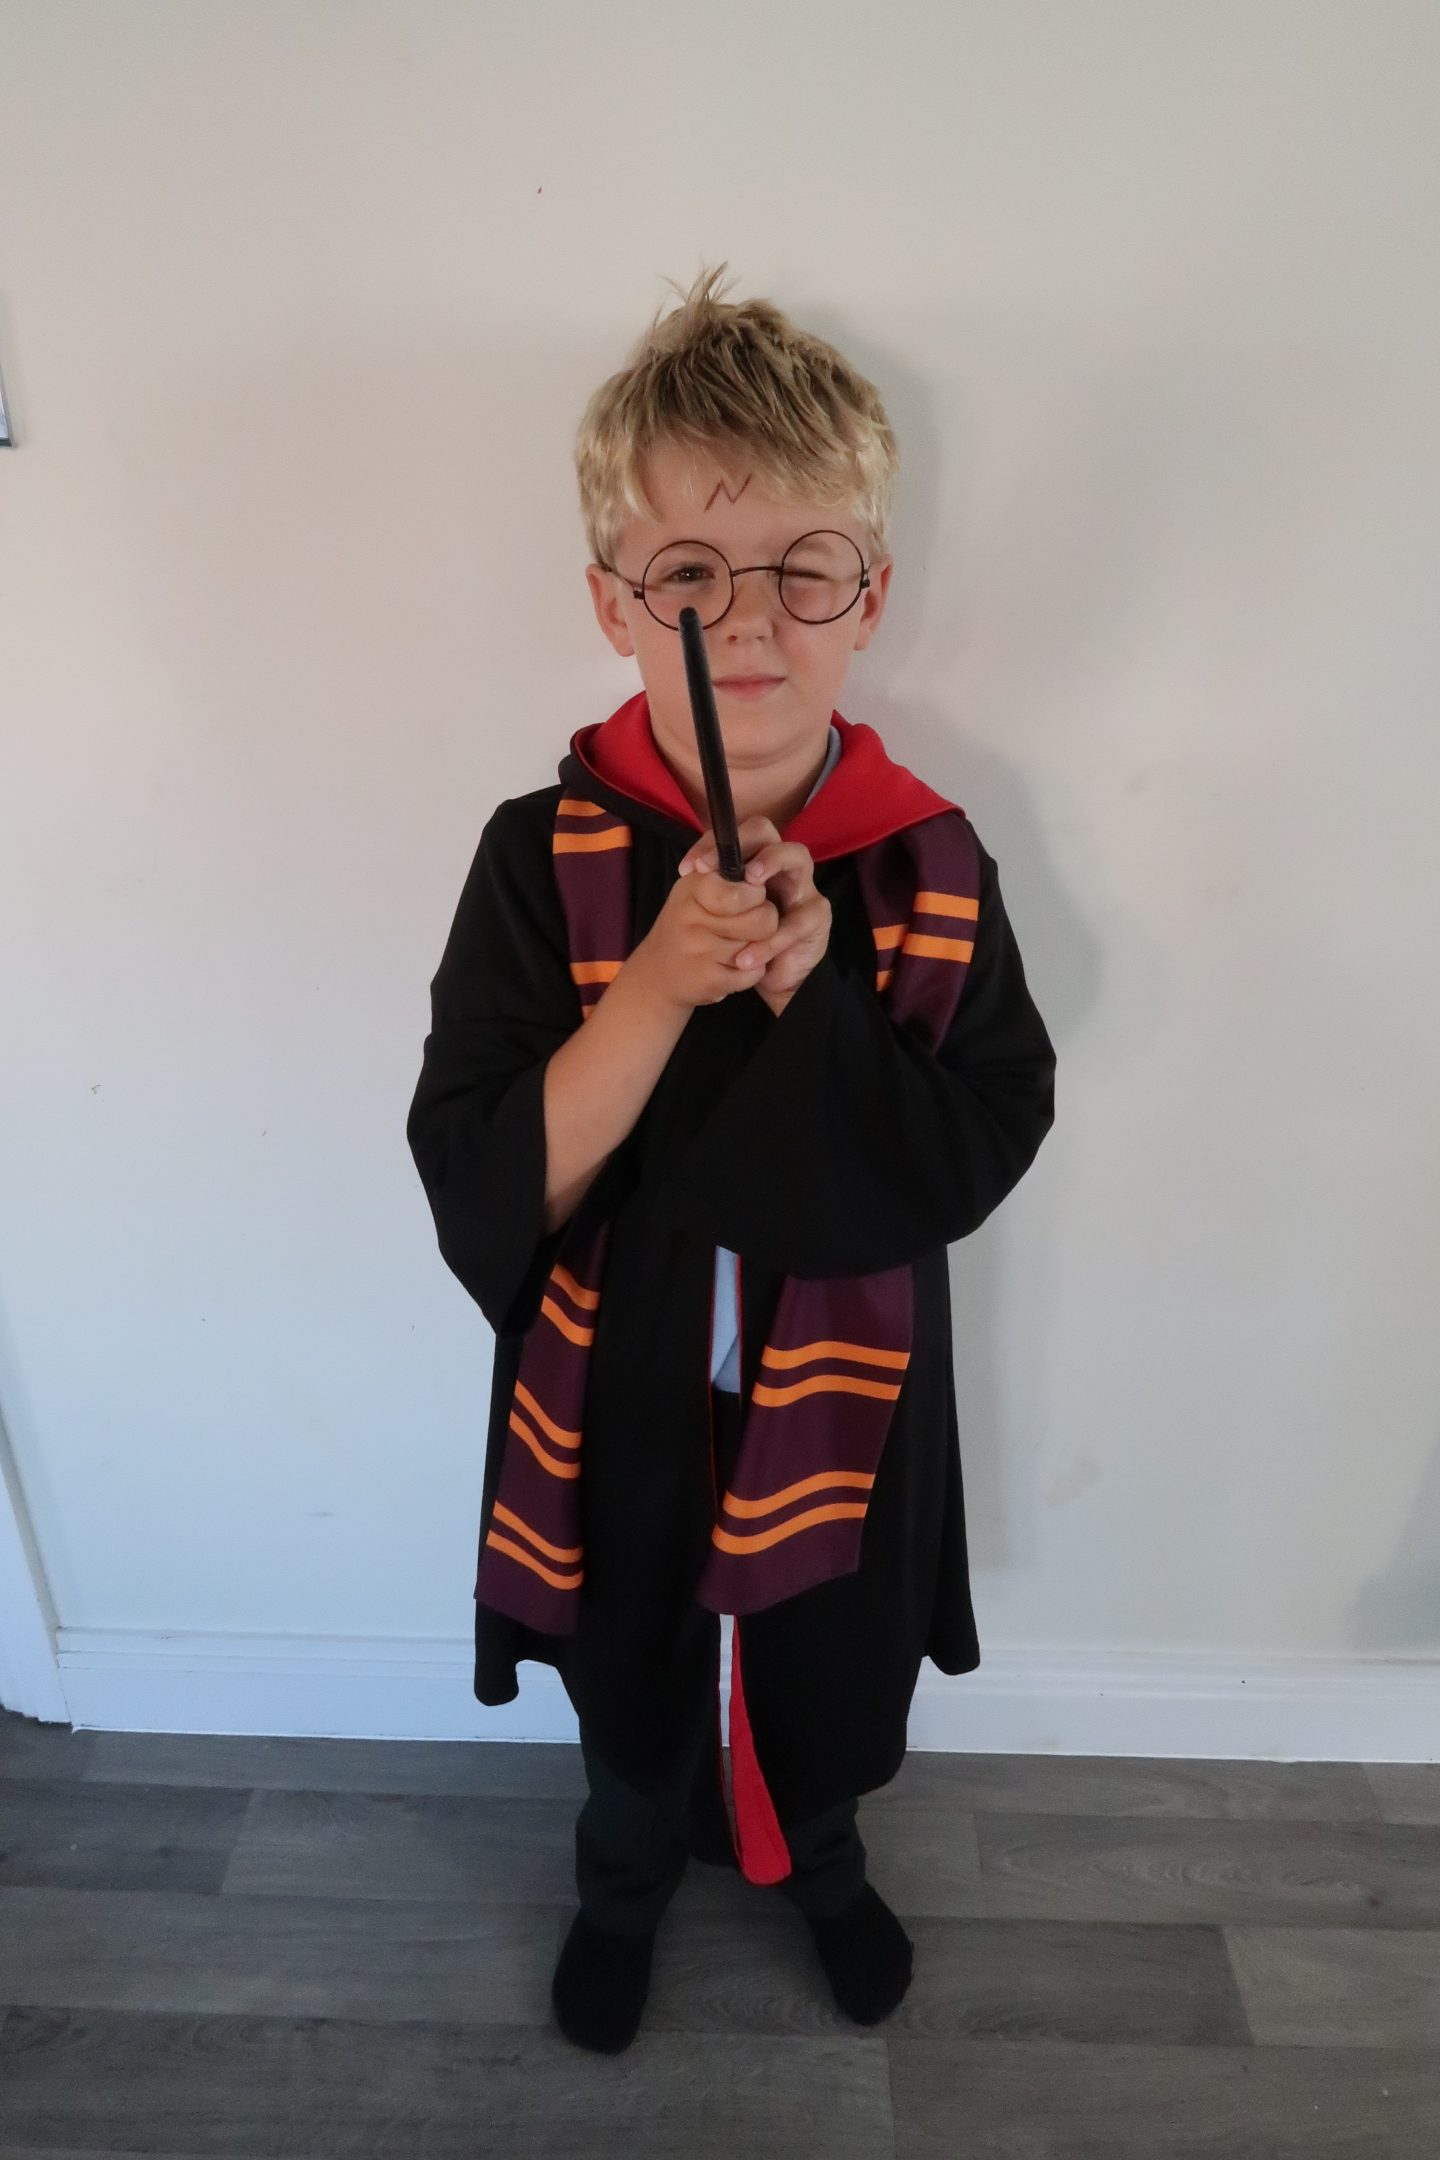 Harry as Harry Potter